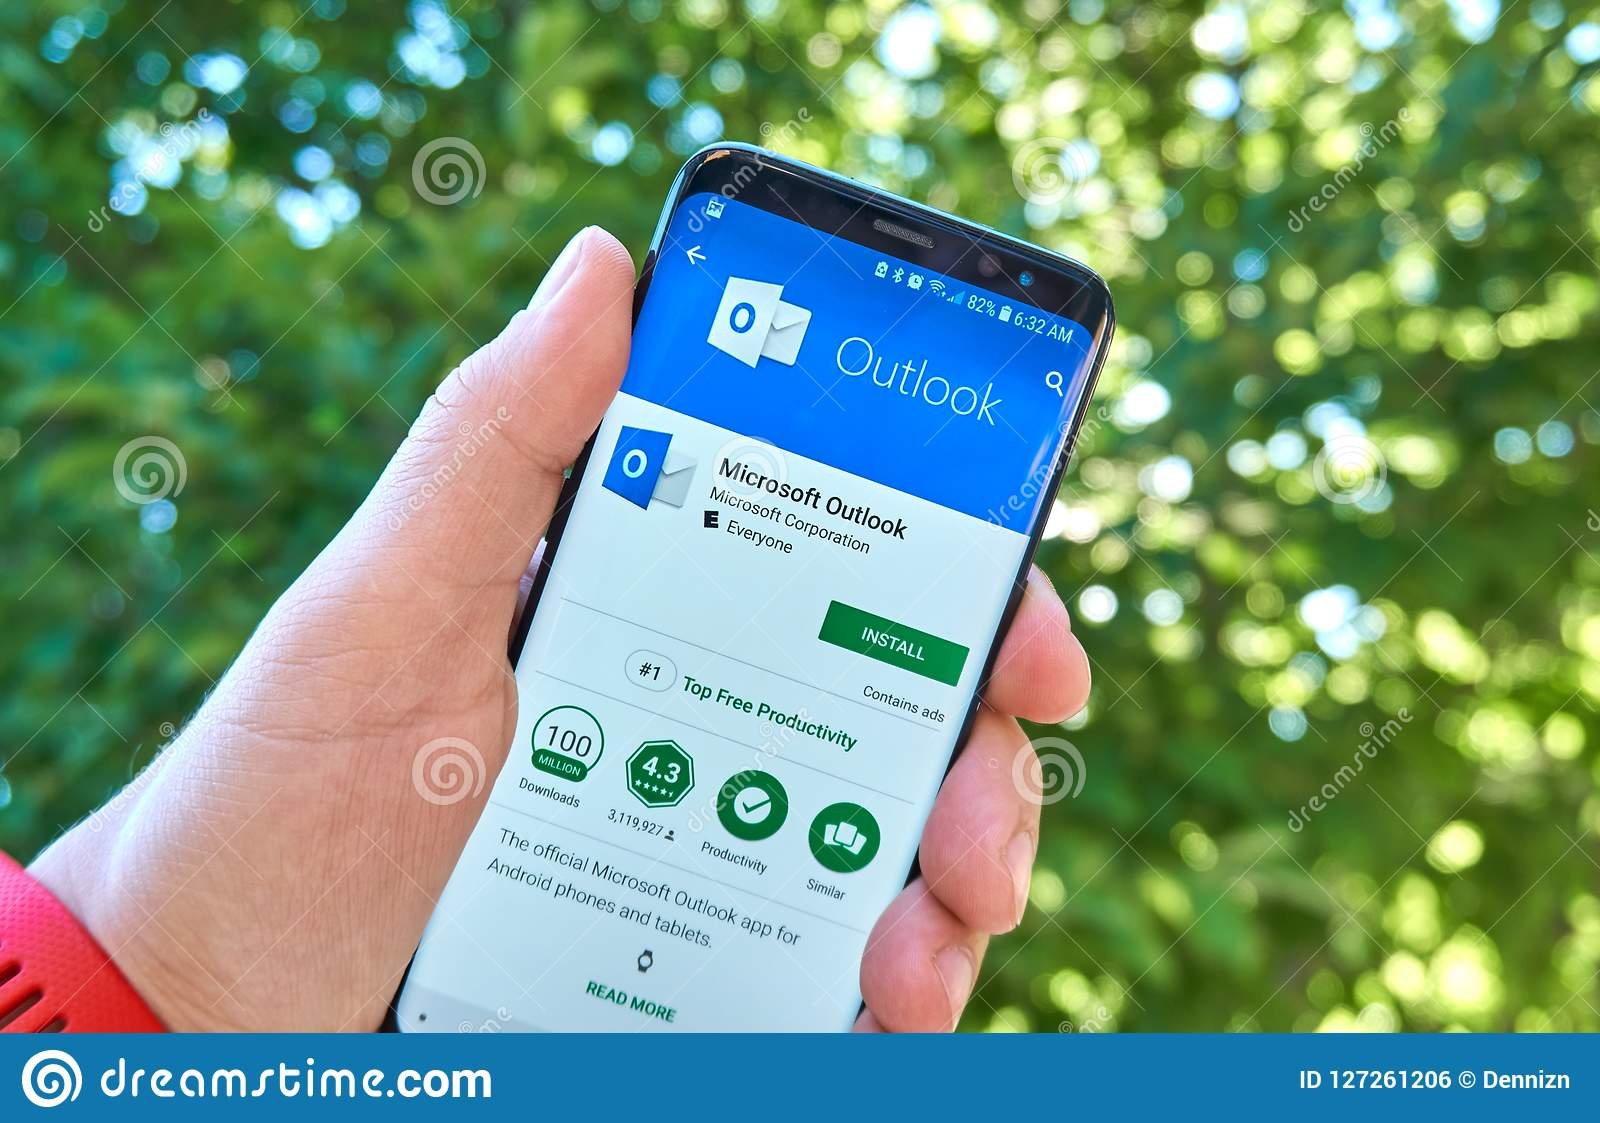 Microsoft Outlook Mobile App On Samsung S8  Editorial Photo - Image